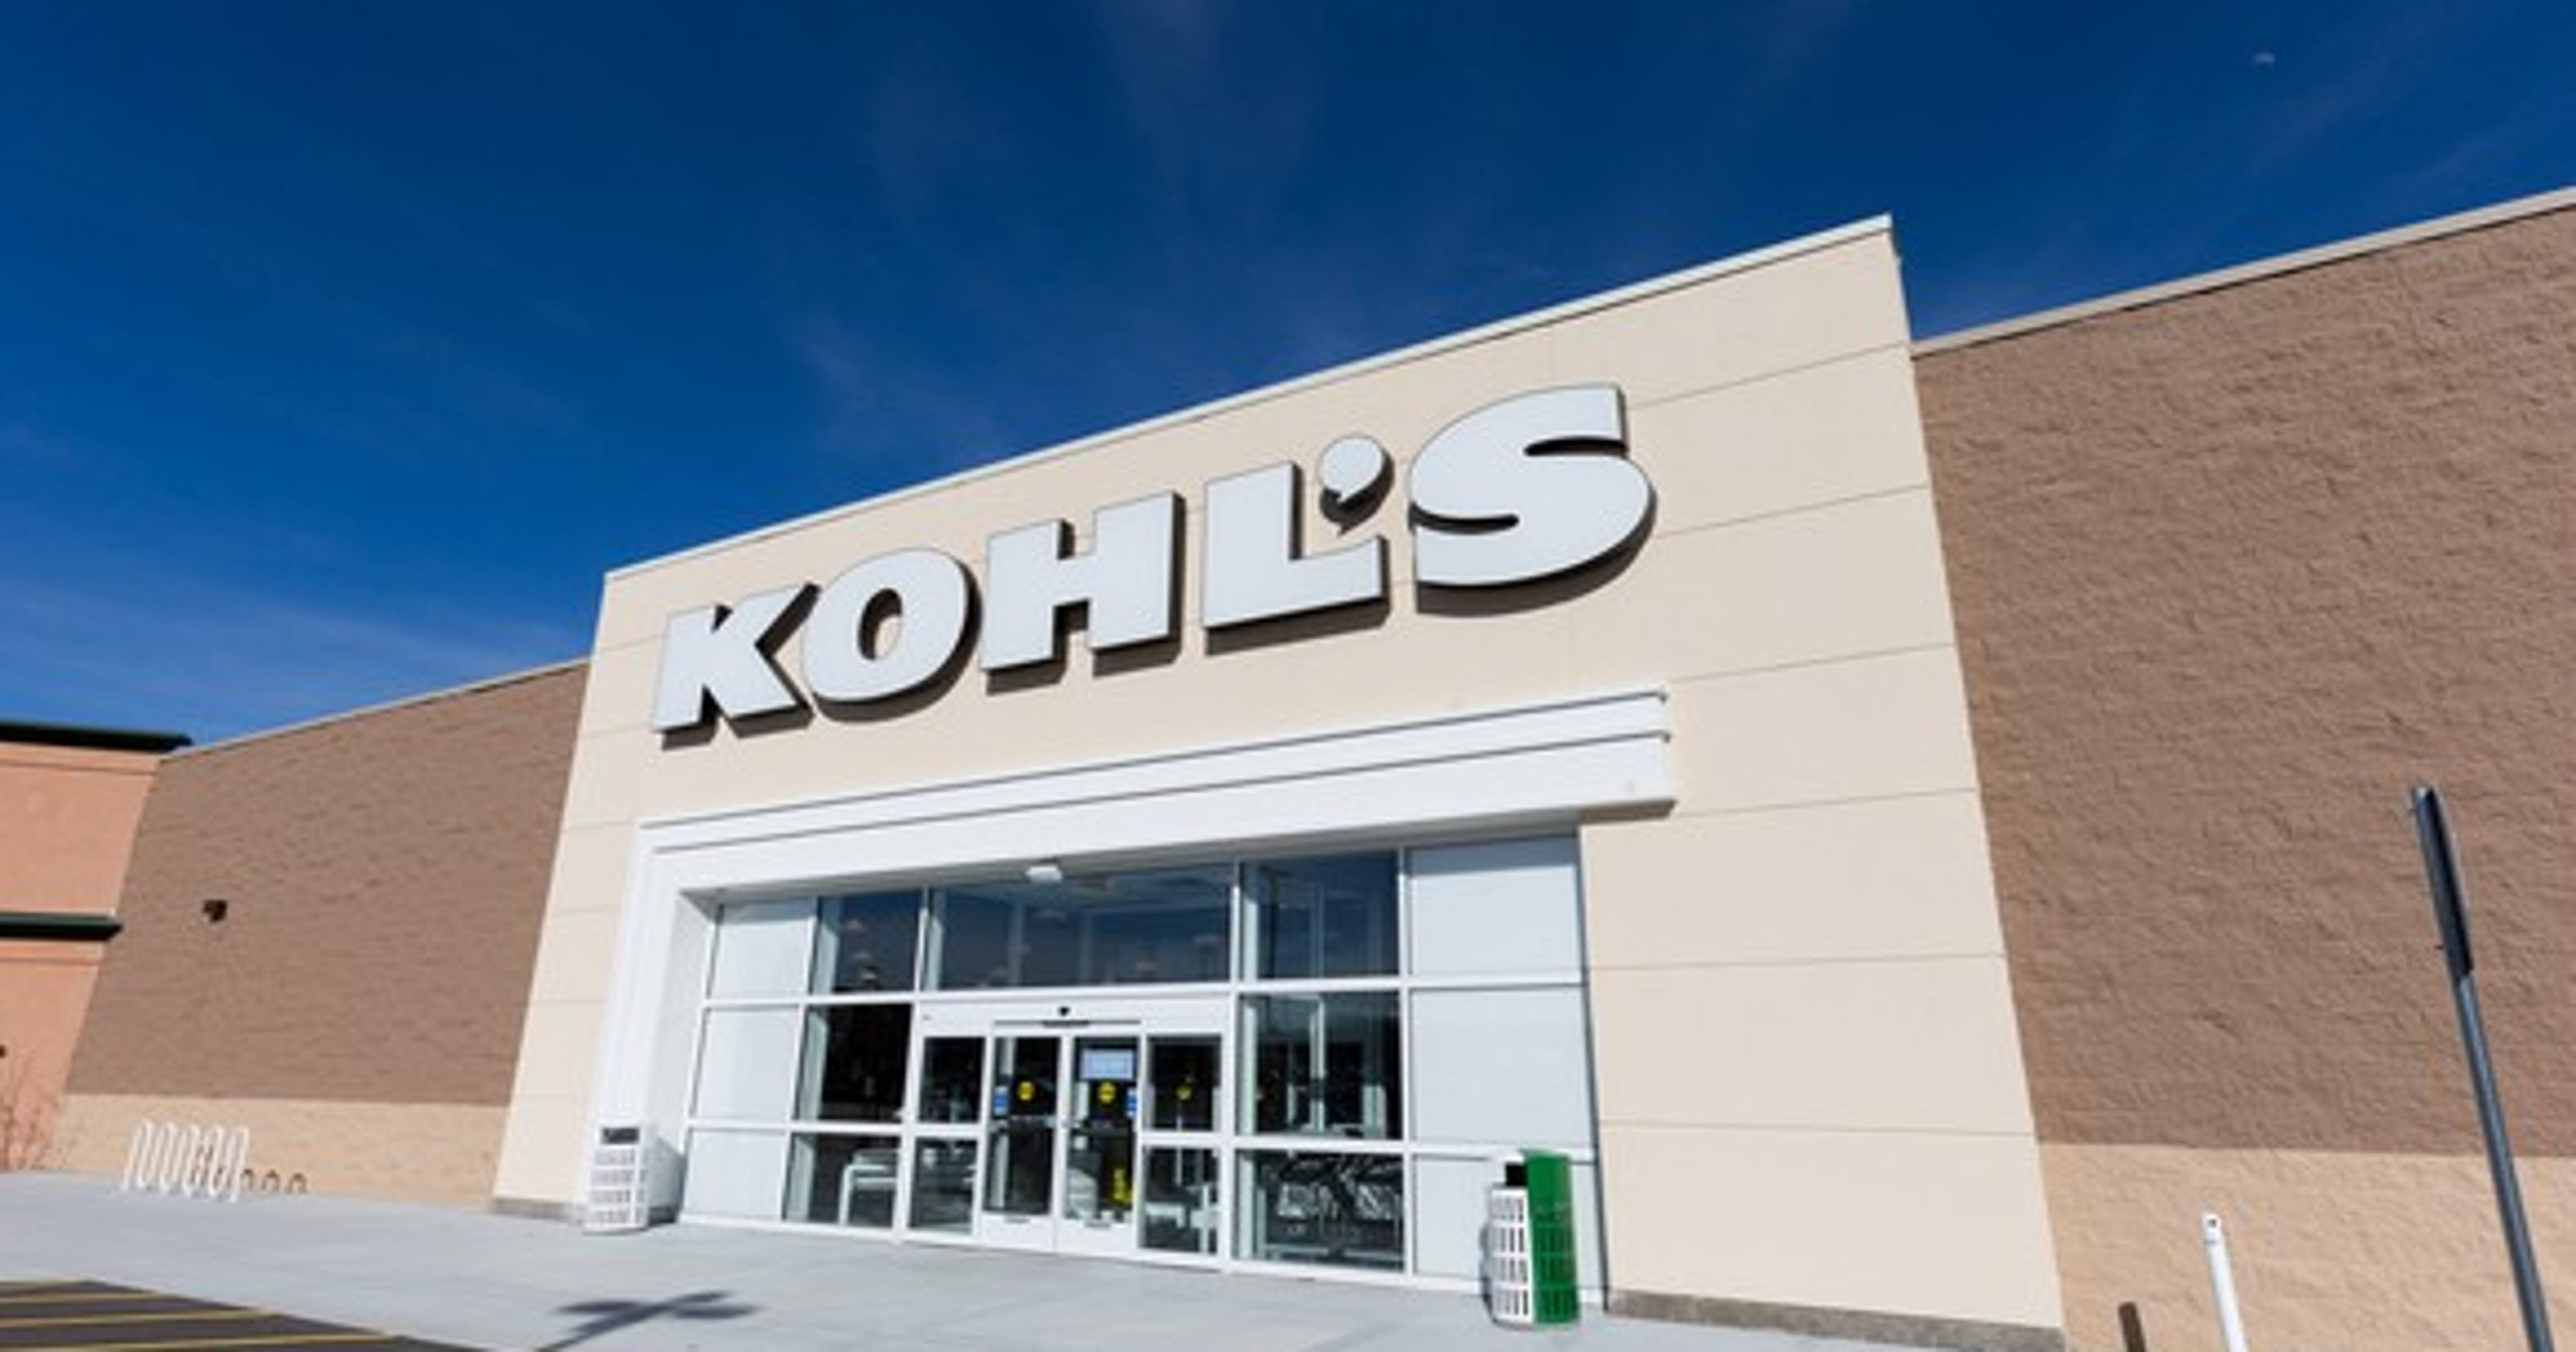 Is Kohls Open On Christmas Eve.Kohl S Will Stay Open 24 Hours A Day For Last Minute